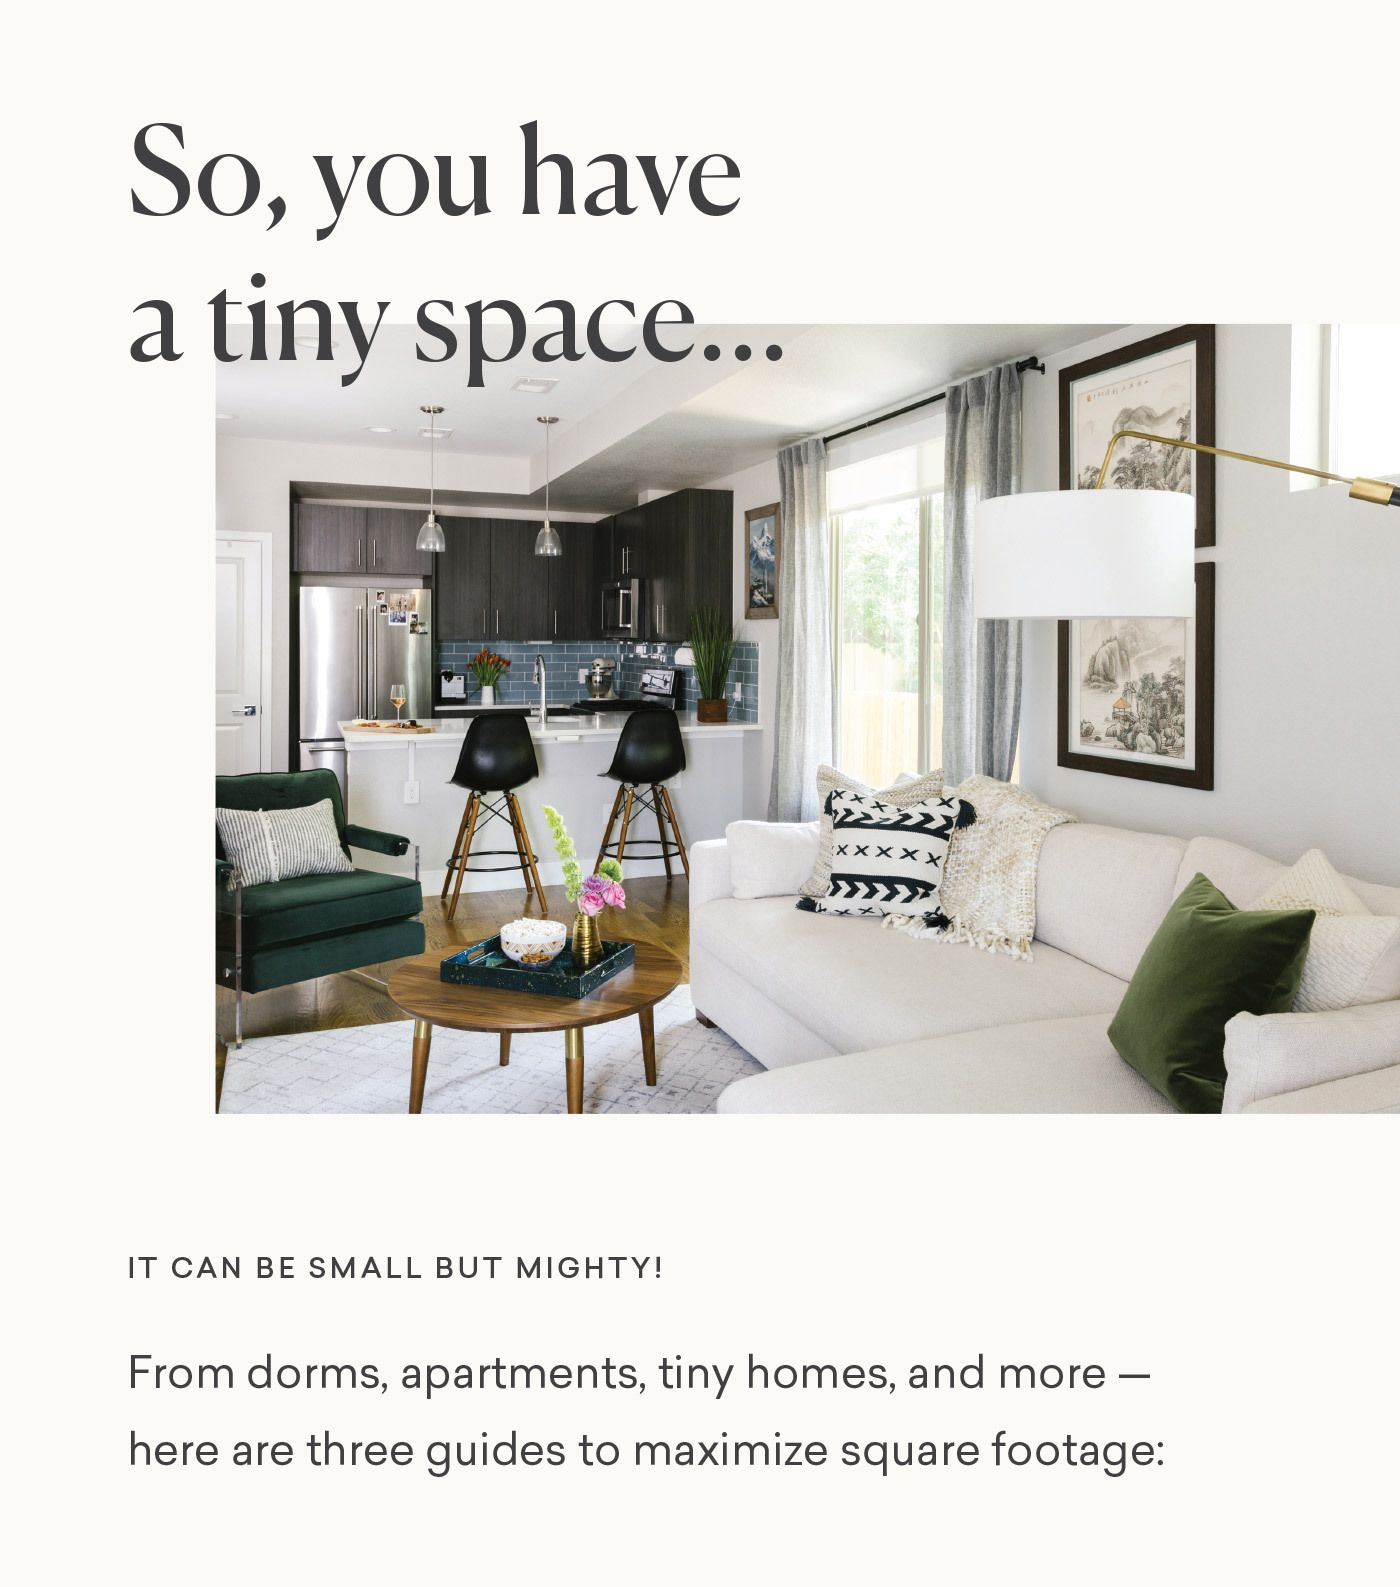 Interior design tips for tiny space it can be small but mighty learn the from havenly newsletter also rh pinterest